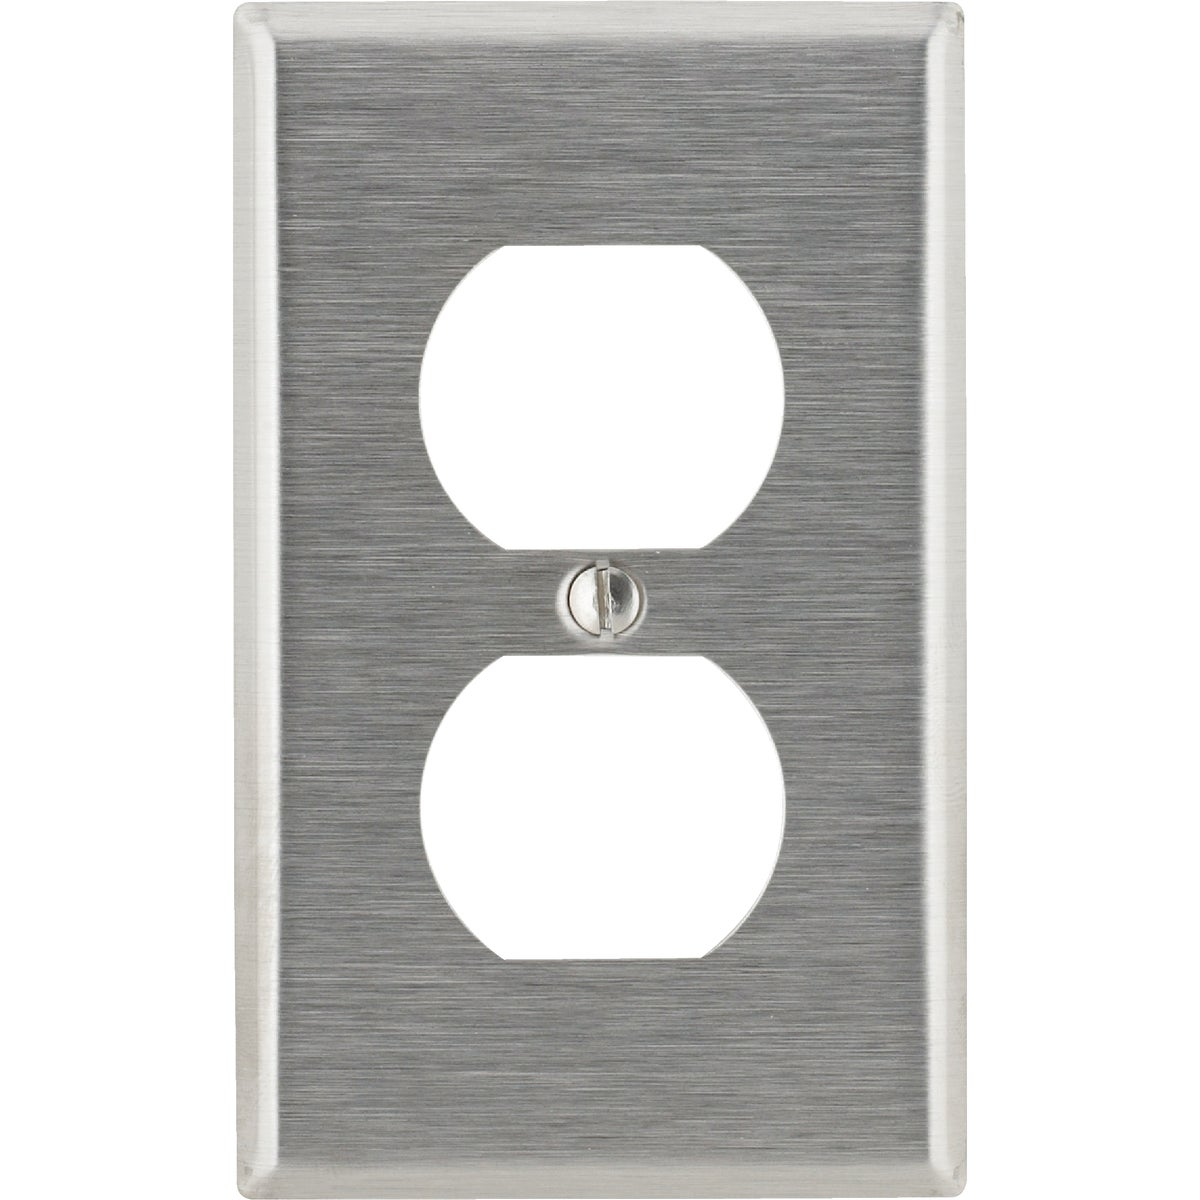 SS DUP OUTLET WALLPLATE